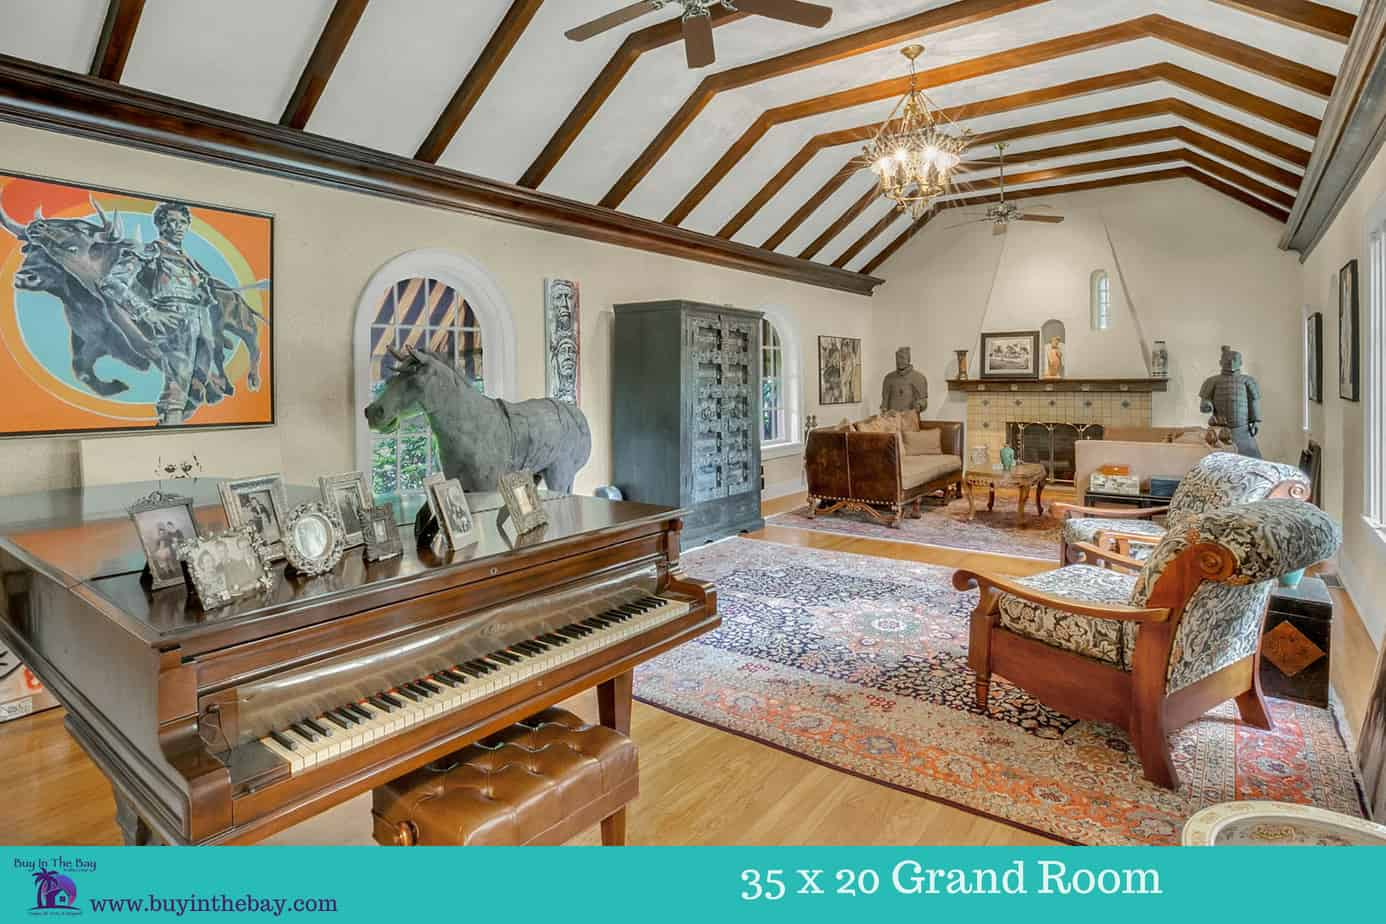 Picture of a Stately 35 x 20 Wood Beamed Ceiling Living room in a home for sale in South Tampa Florida. A perfect Example of a Historic Homes in Florida and a Tampa Bay Luxury Homes For sale.